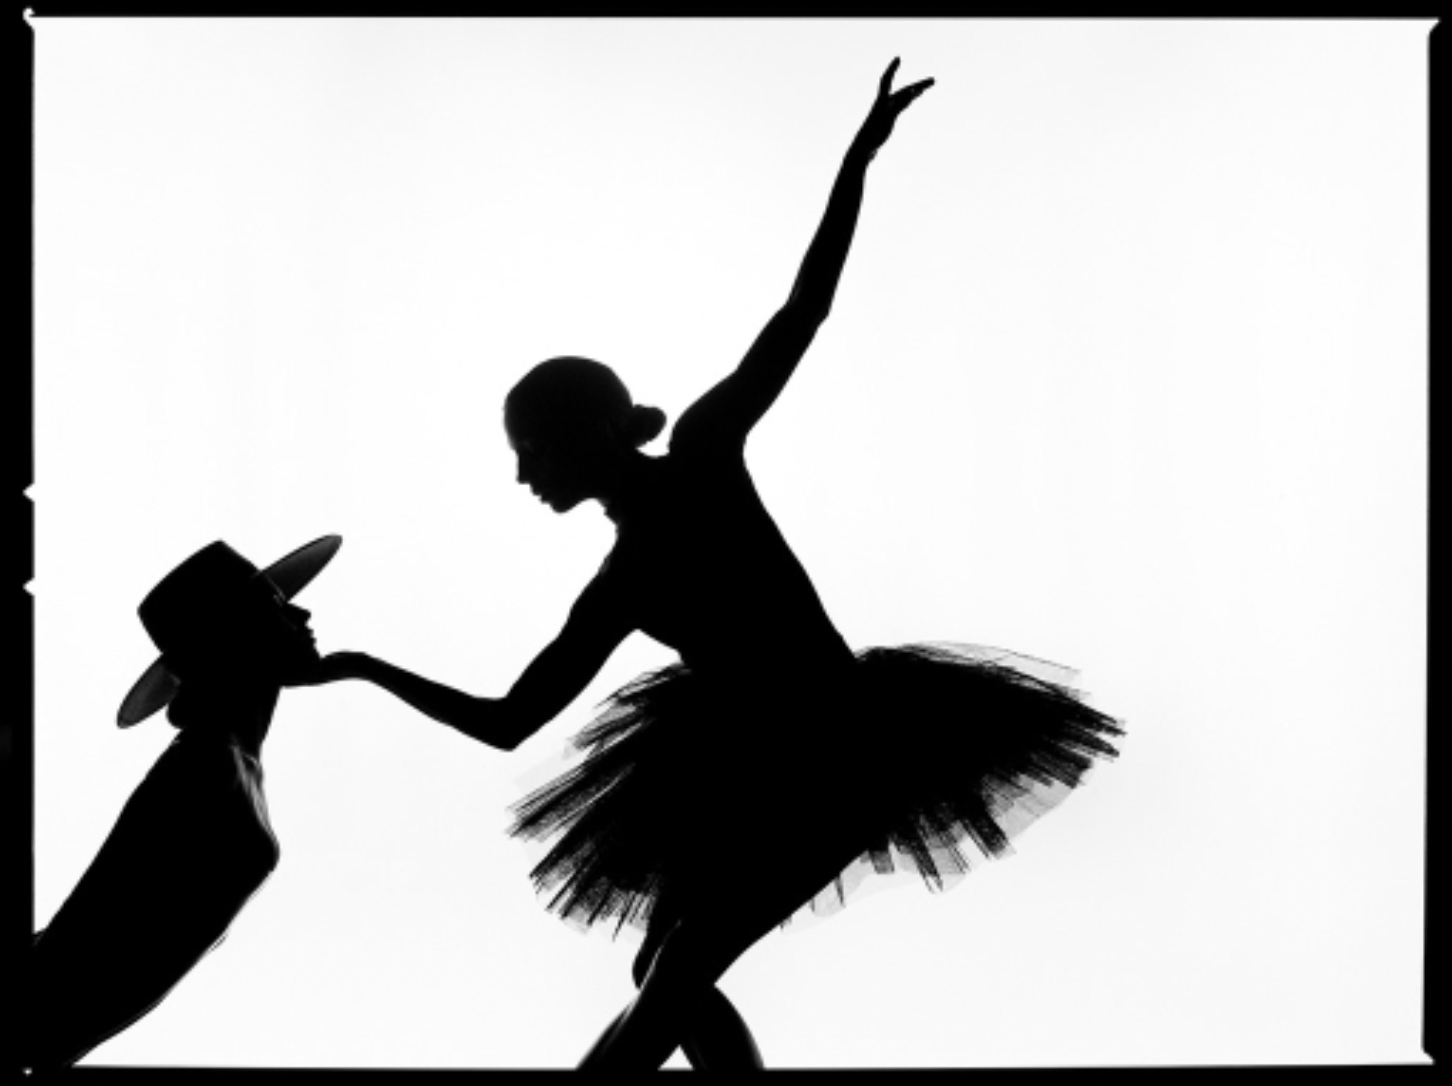 Touch SIlhouette by Tyler Shields